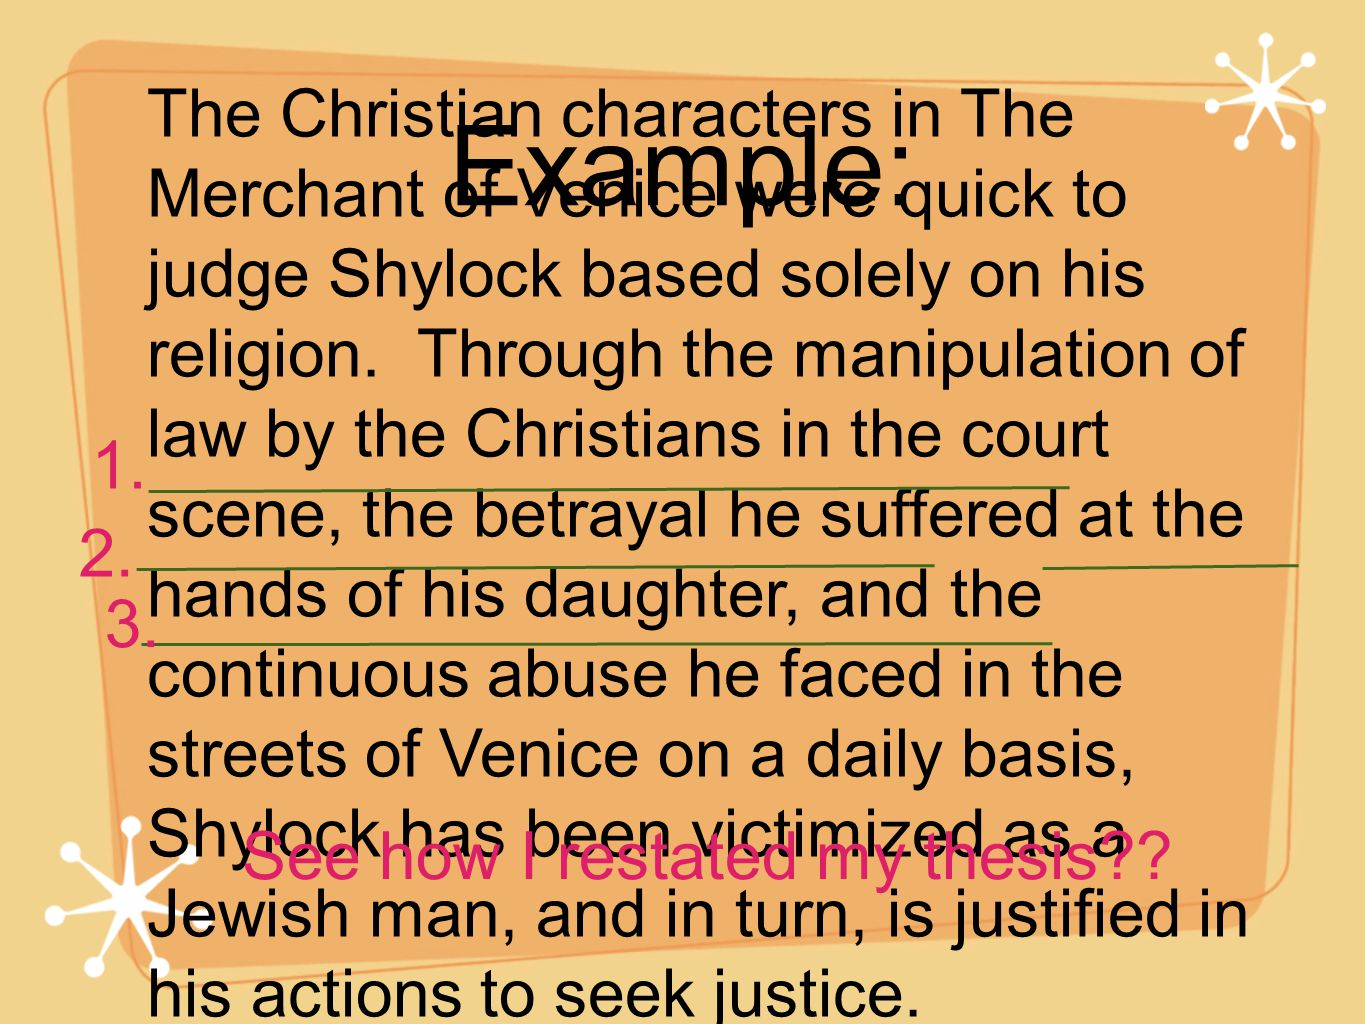 merchant of venice essay prejudice The themetracker below shows where, and to what degree, the theme of prejudice and intolerance appears in each scene of the merchant of venice click or tap on any chapter to read its summary & analysis.